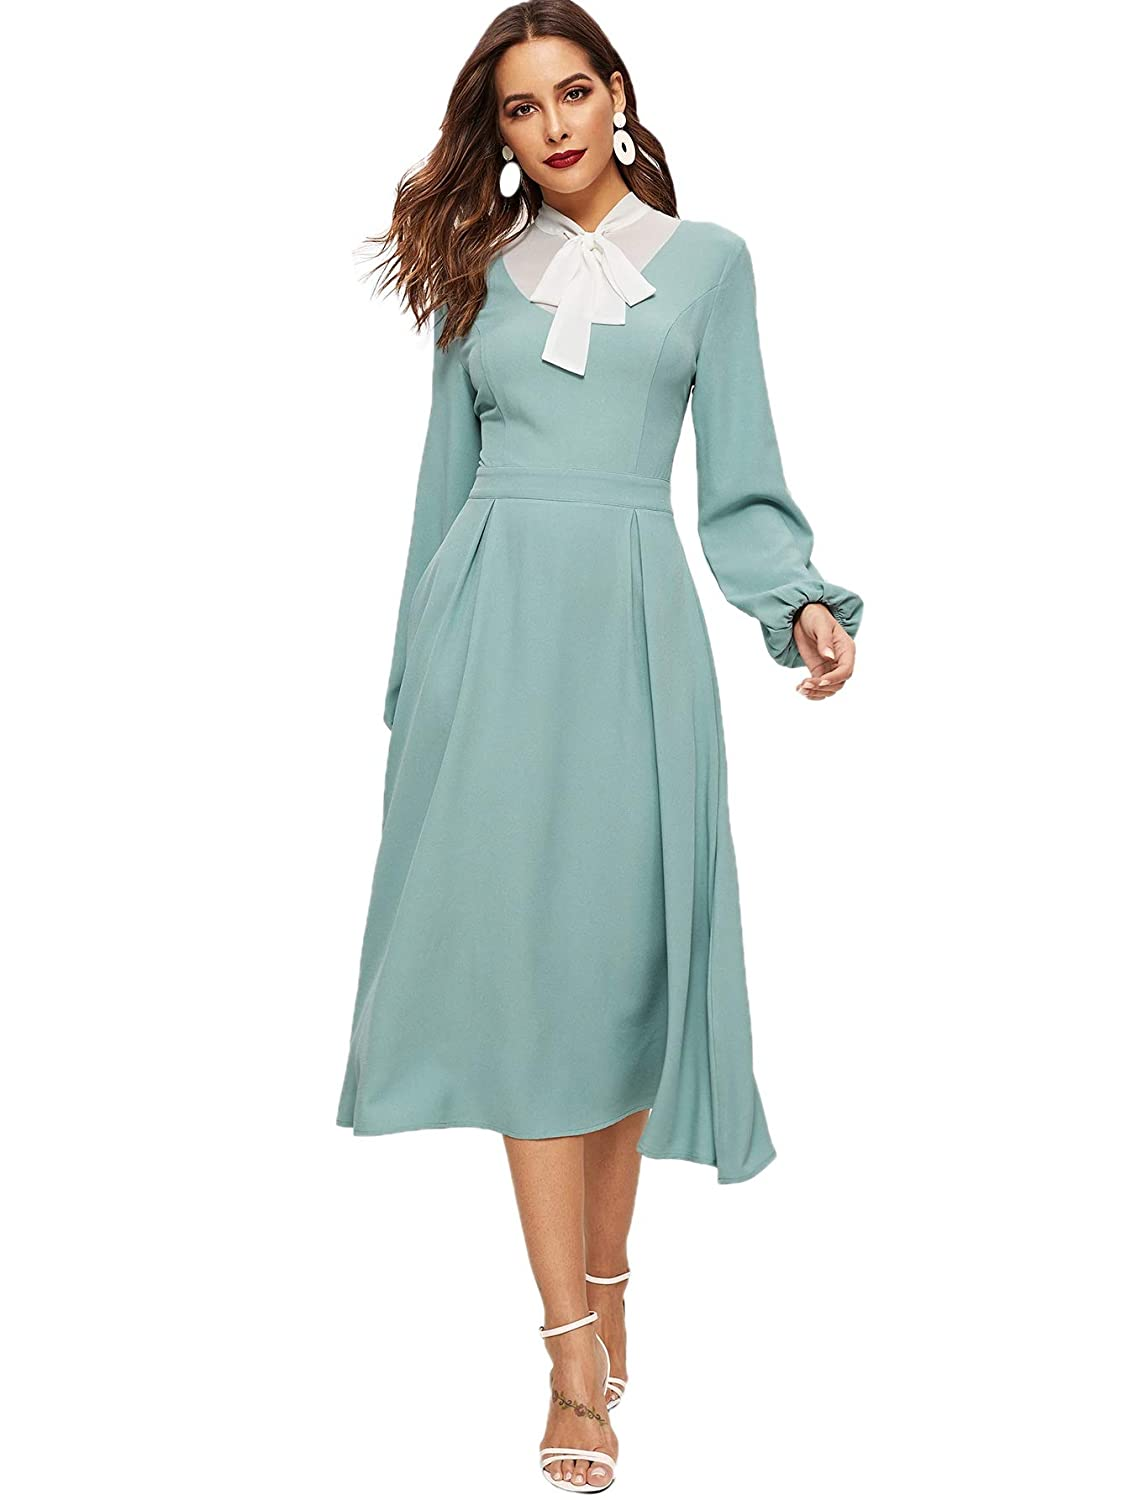 1930s Day Dresses, Afternoon Dresses History Verdusa Womens Tied Neck Contrast Yoke Long Sleeve Box Pleated Flared Dress $33.99 AT vintagedancer.com